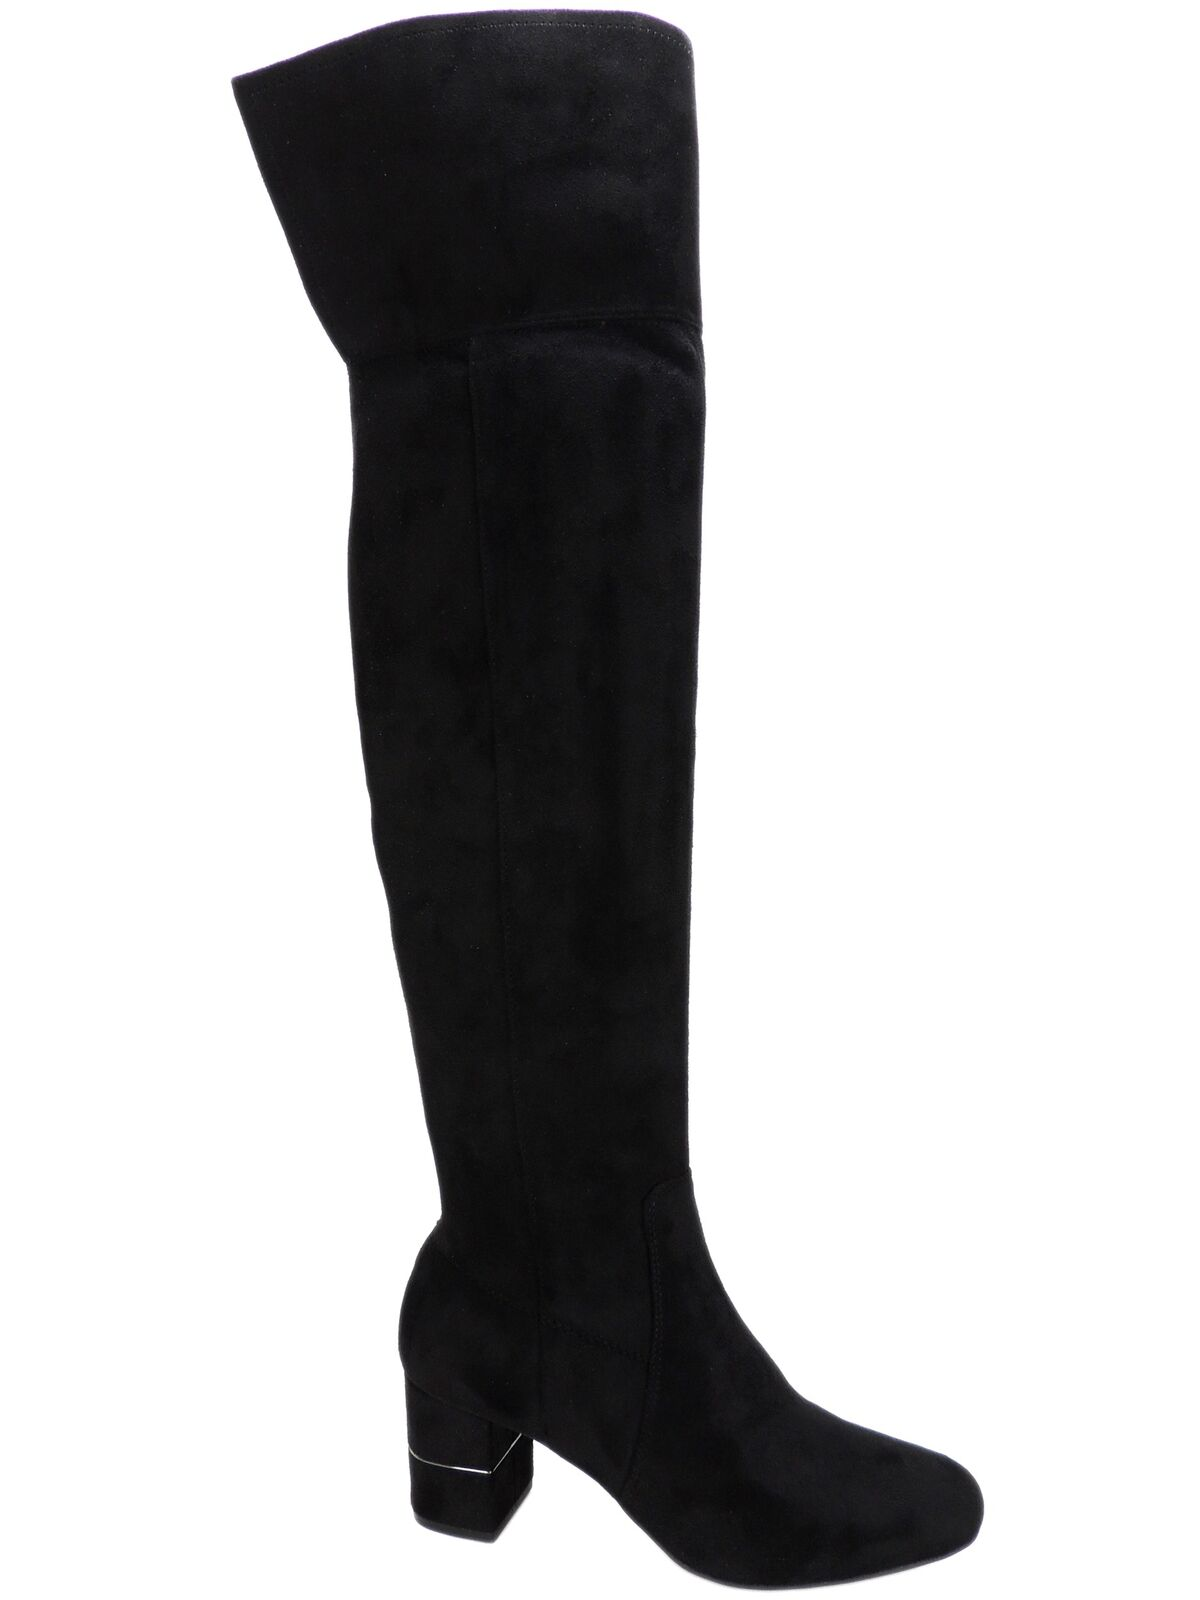 Alfani Women's Novaa Over-The-Knee Boots Black Size 7.5 M